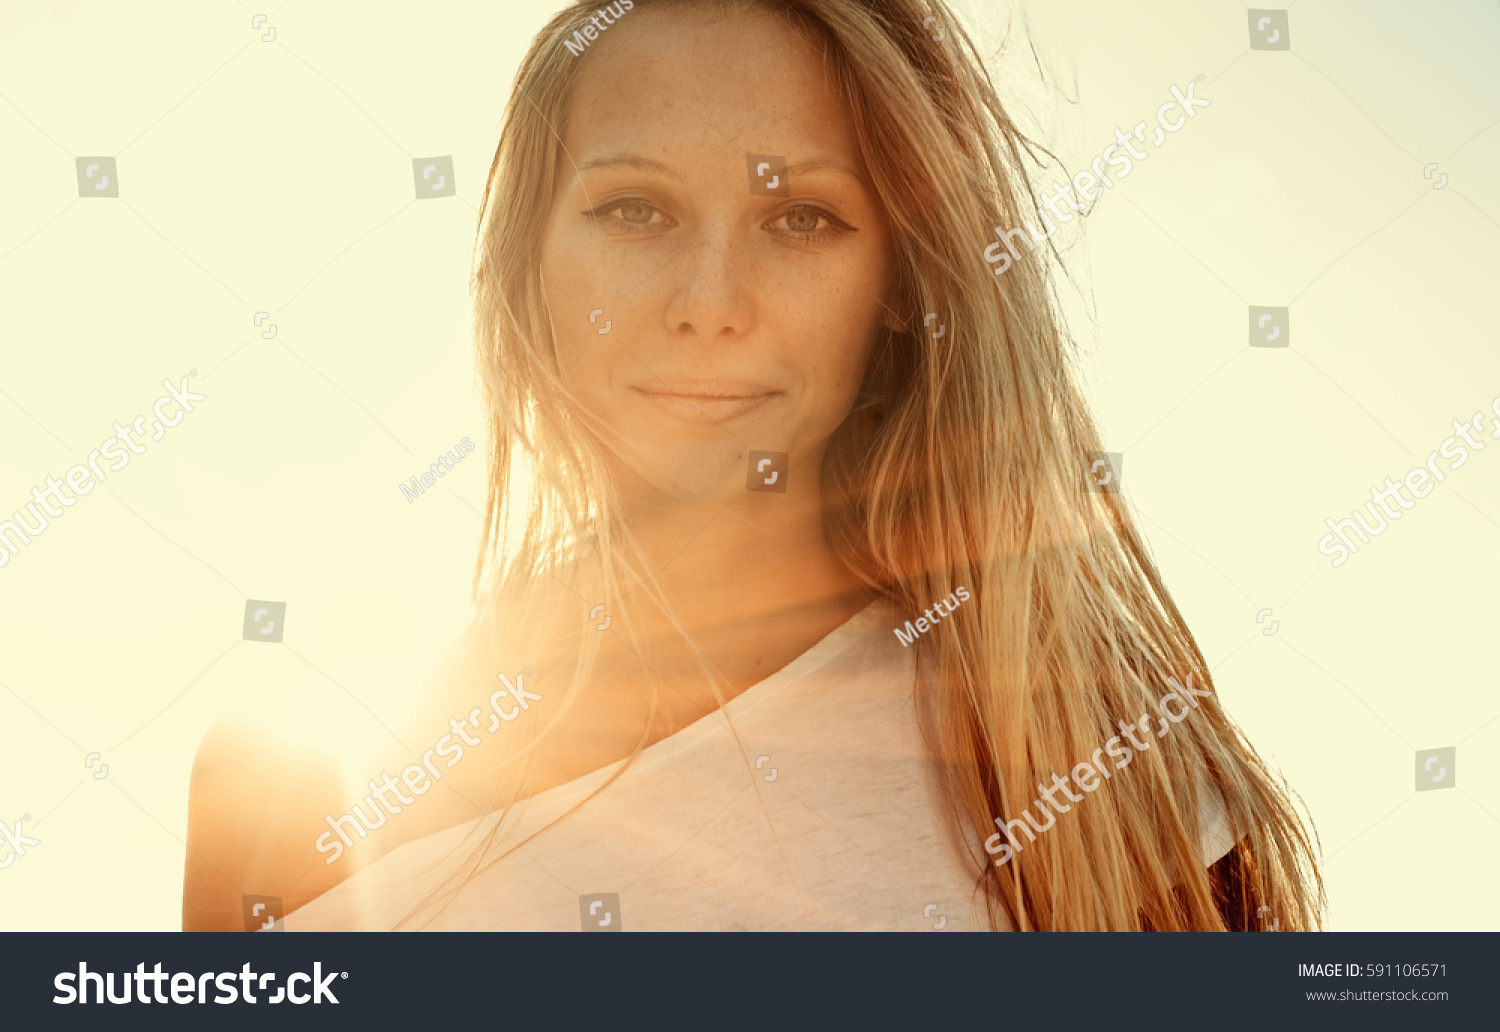 Toned image of blond haired girl blank expression retro color